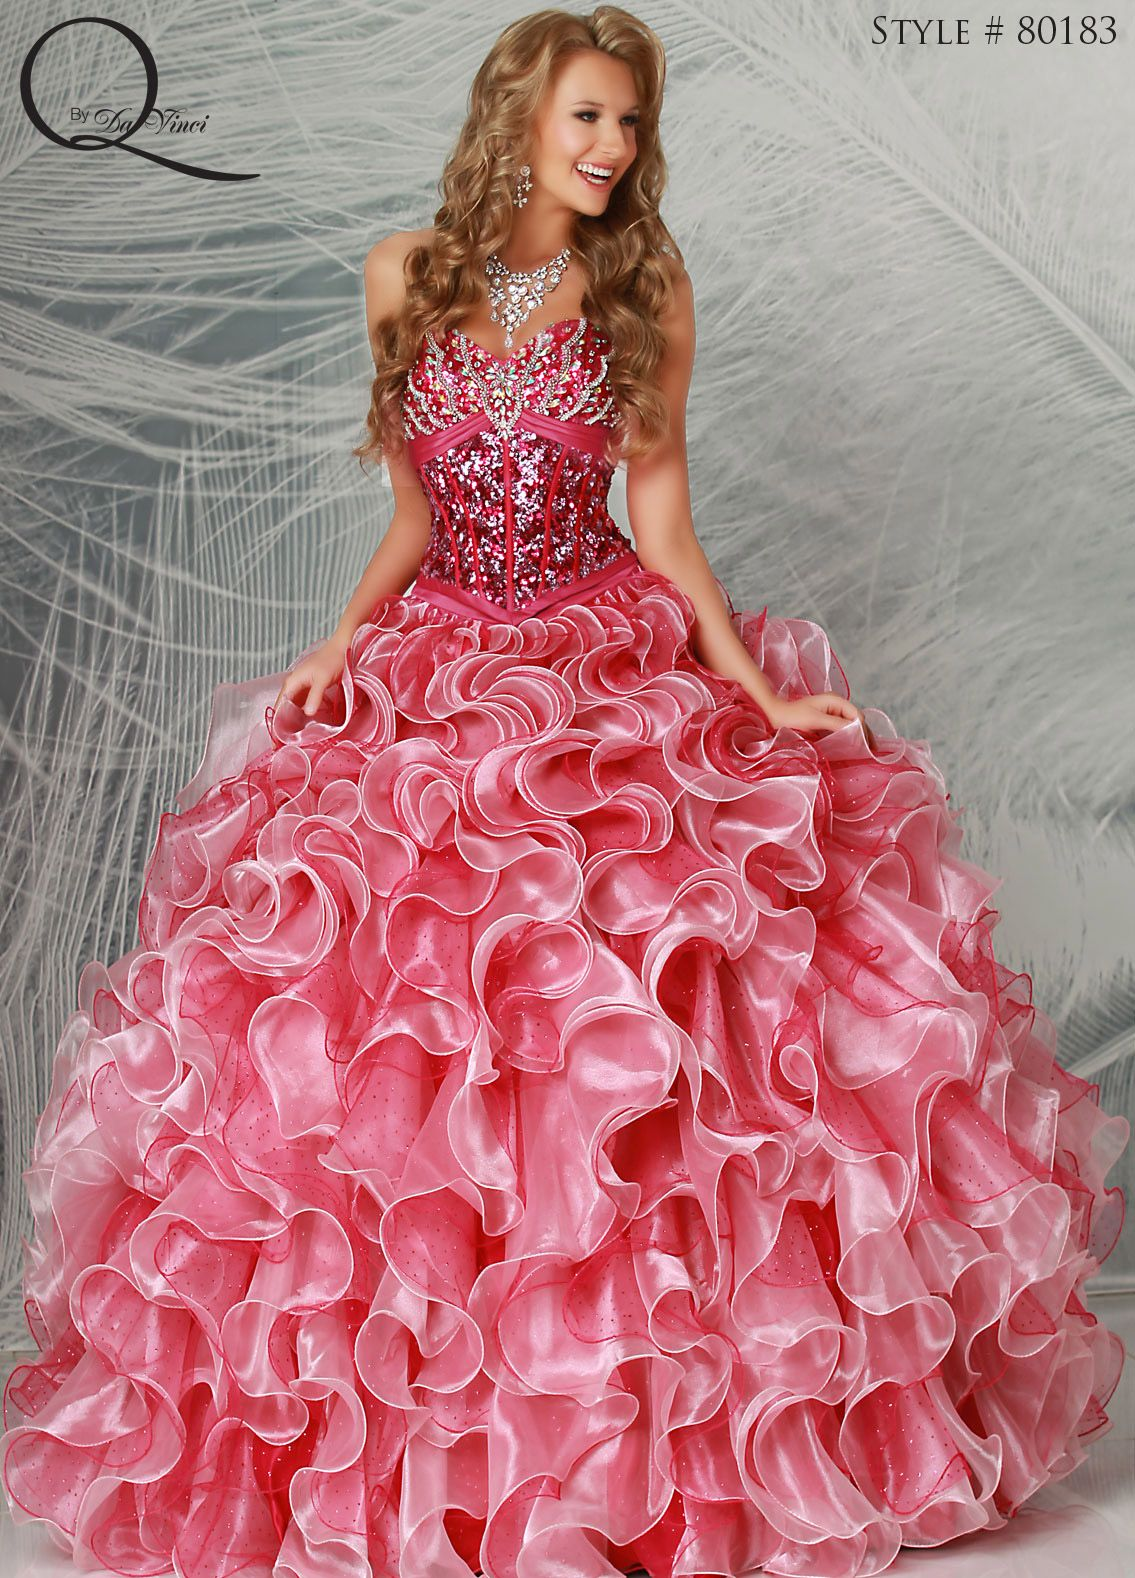 f176224687d Hot pink Quinceanera dress ~ Quinceanera dresses from Q by Davinci  quince  XV años. Available in Fuchsia Flamingo